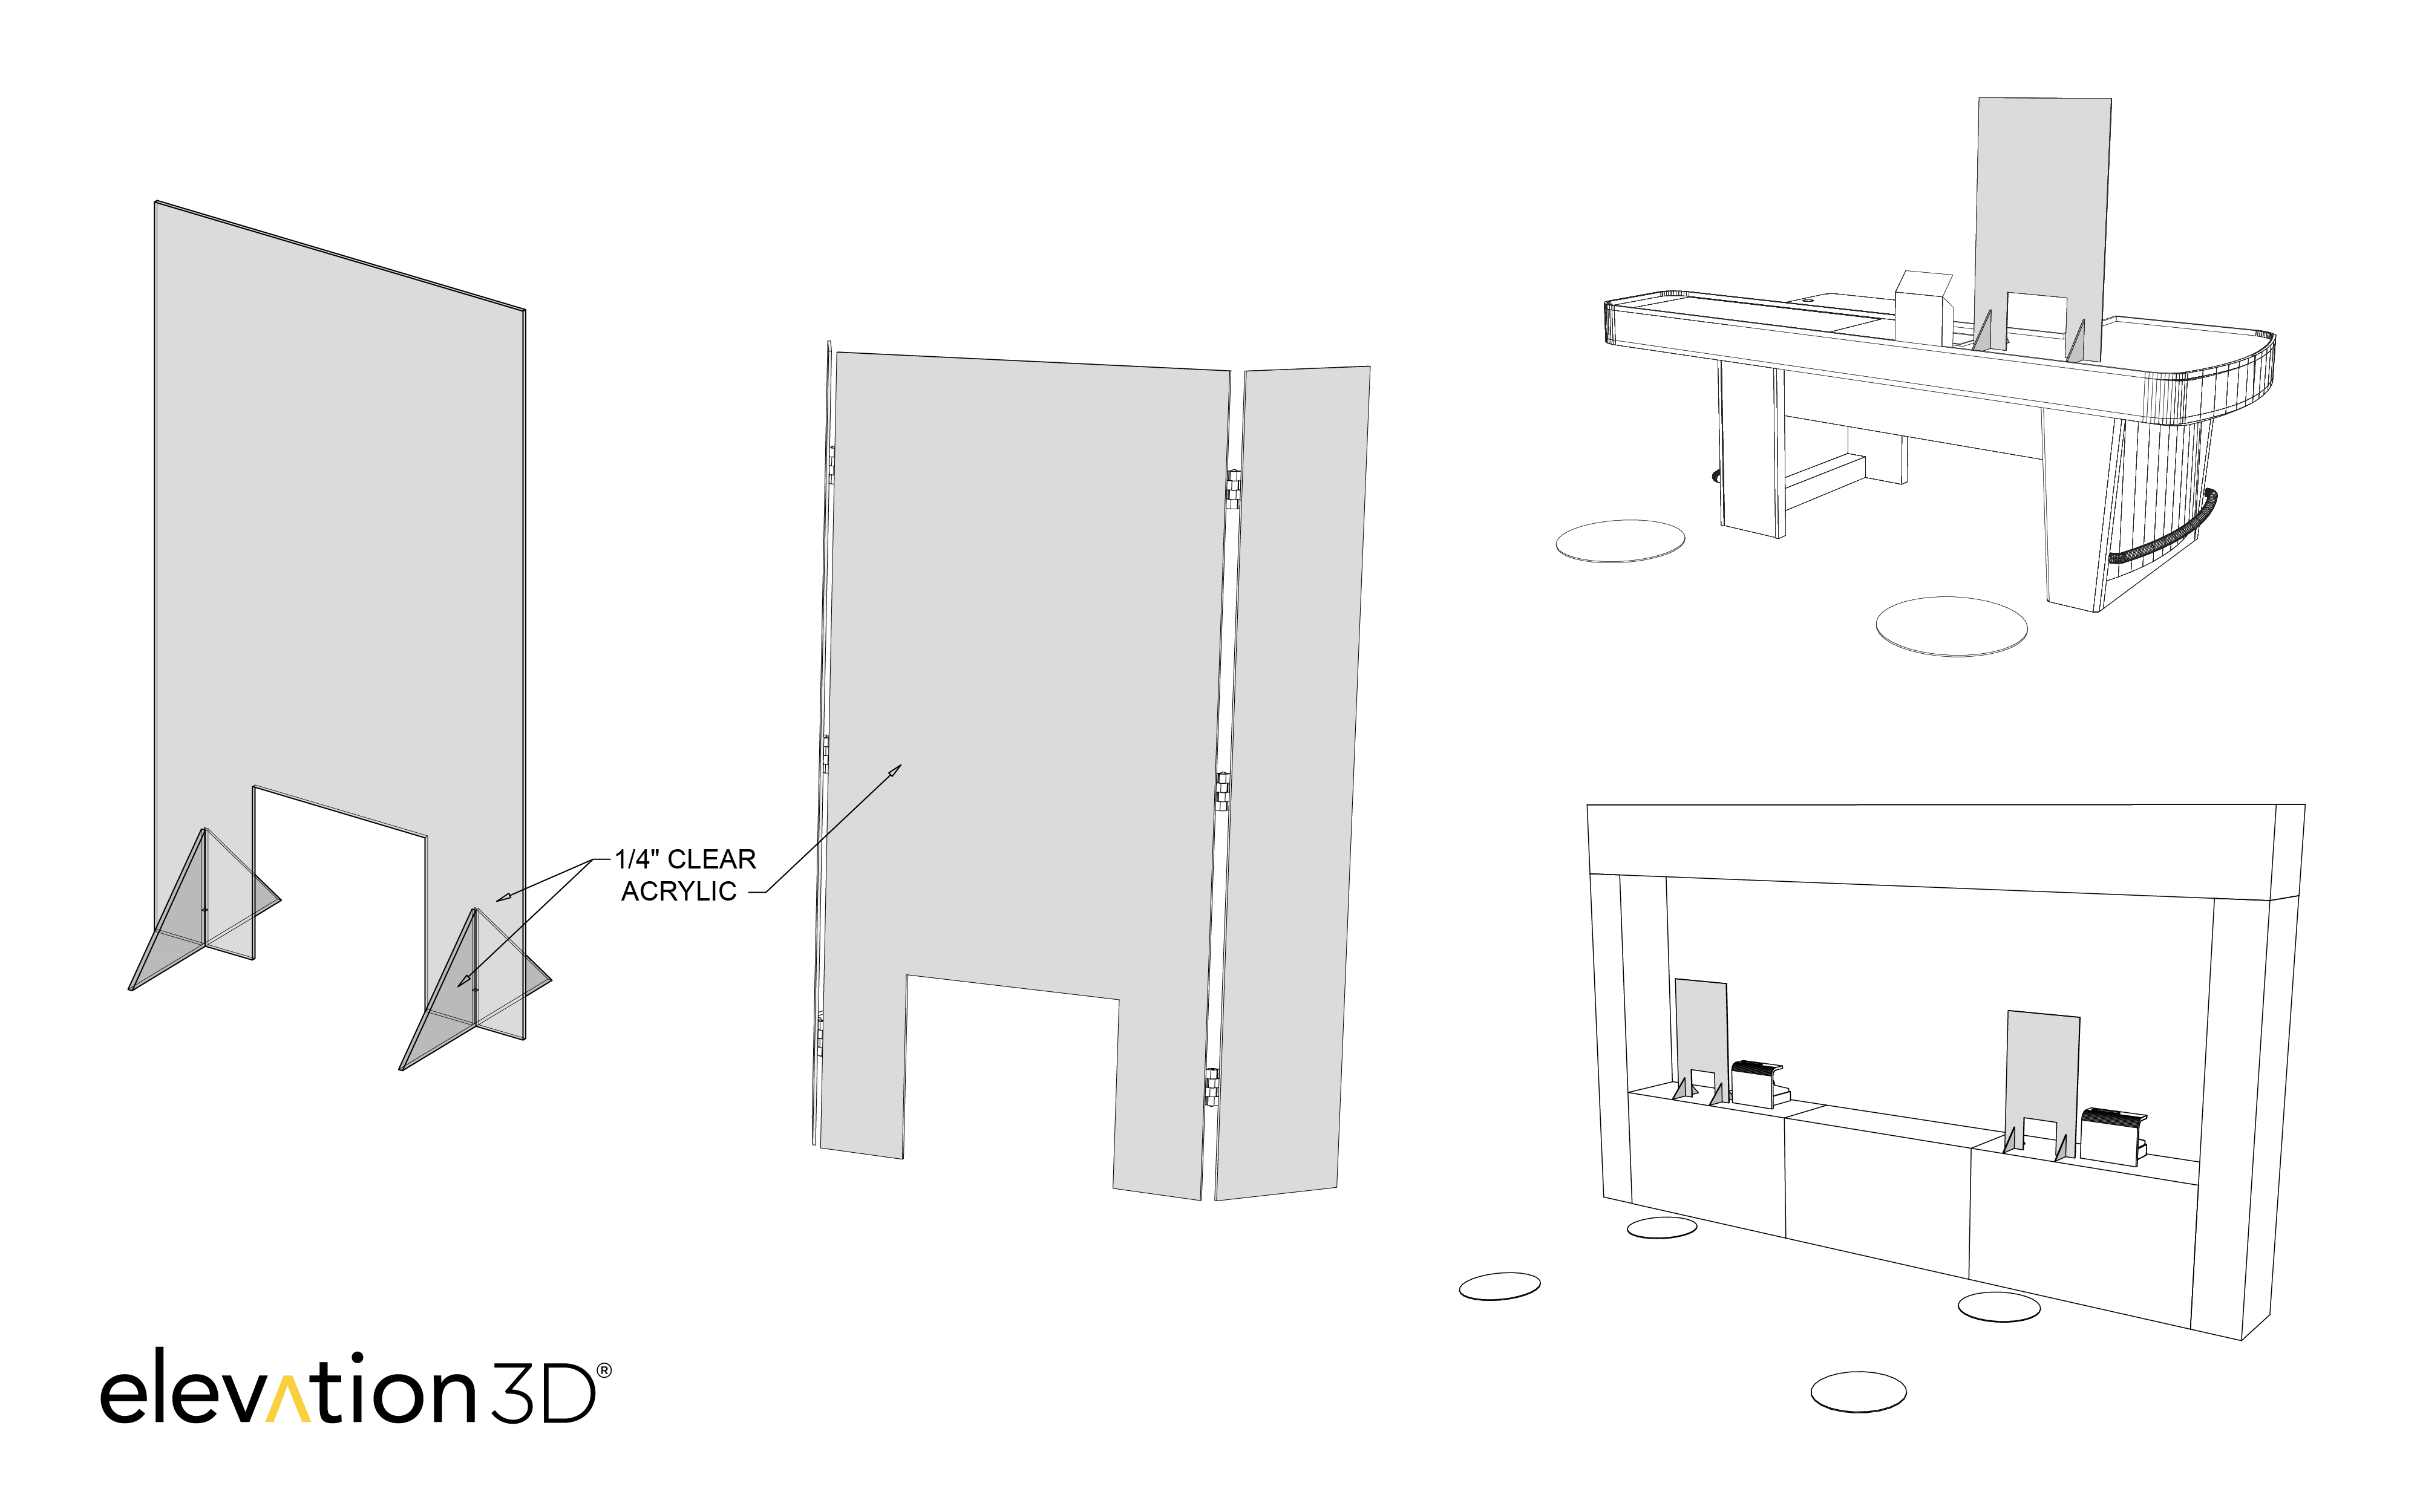 Elevation3D Protective Countertop Shields